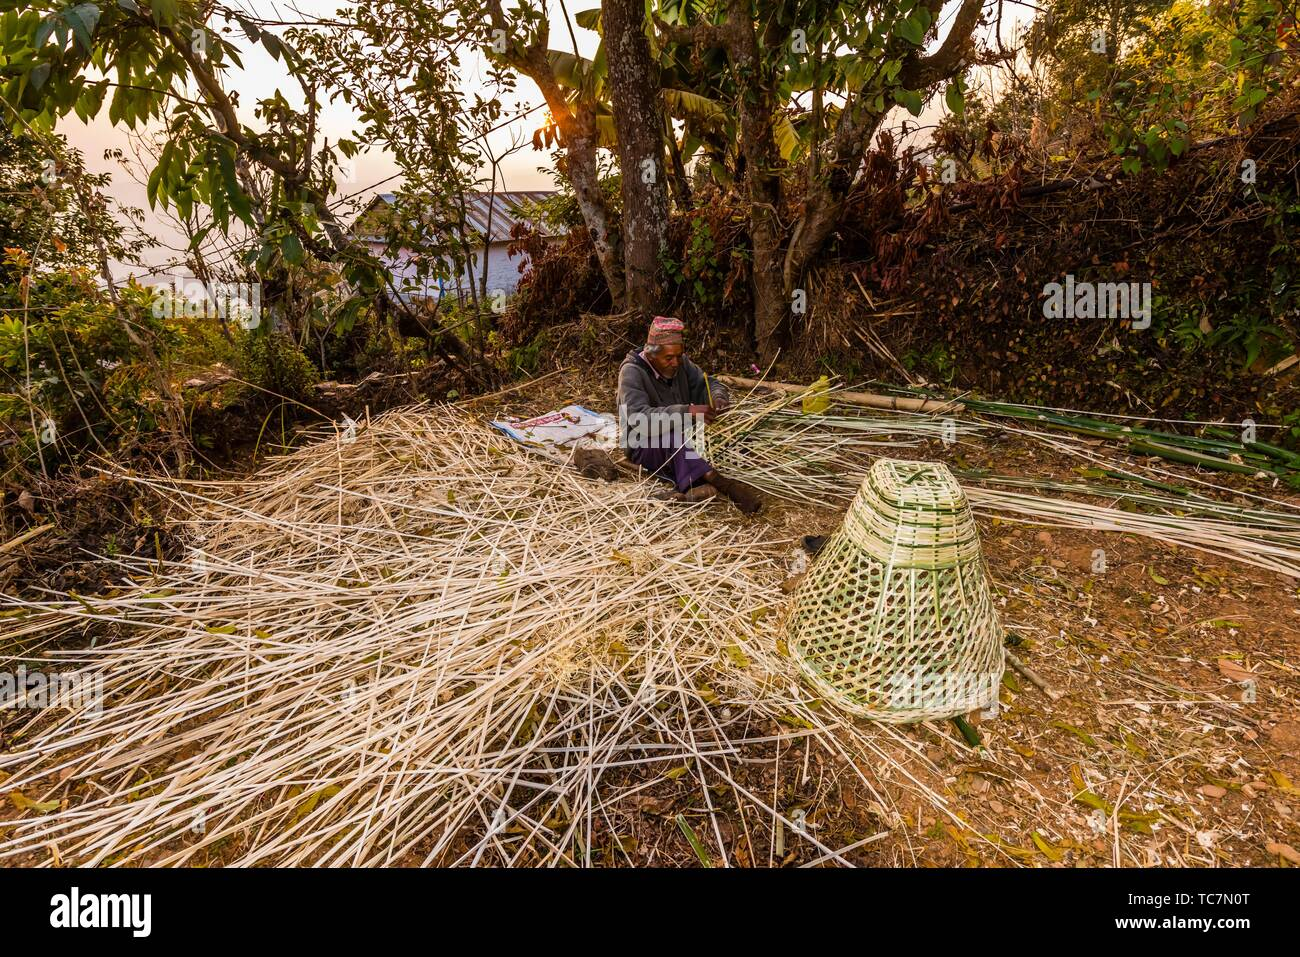 Man weaving bamboo baskets, Lekhnath, Kathmandu Valley, Nepal. - Stock Image